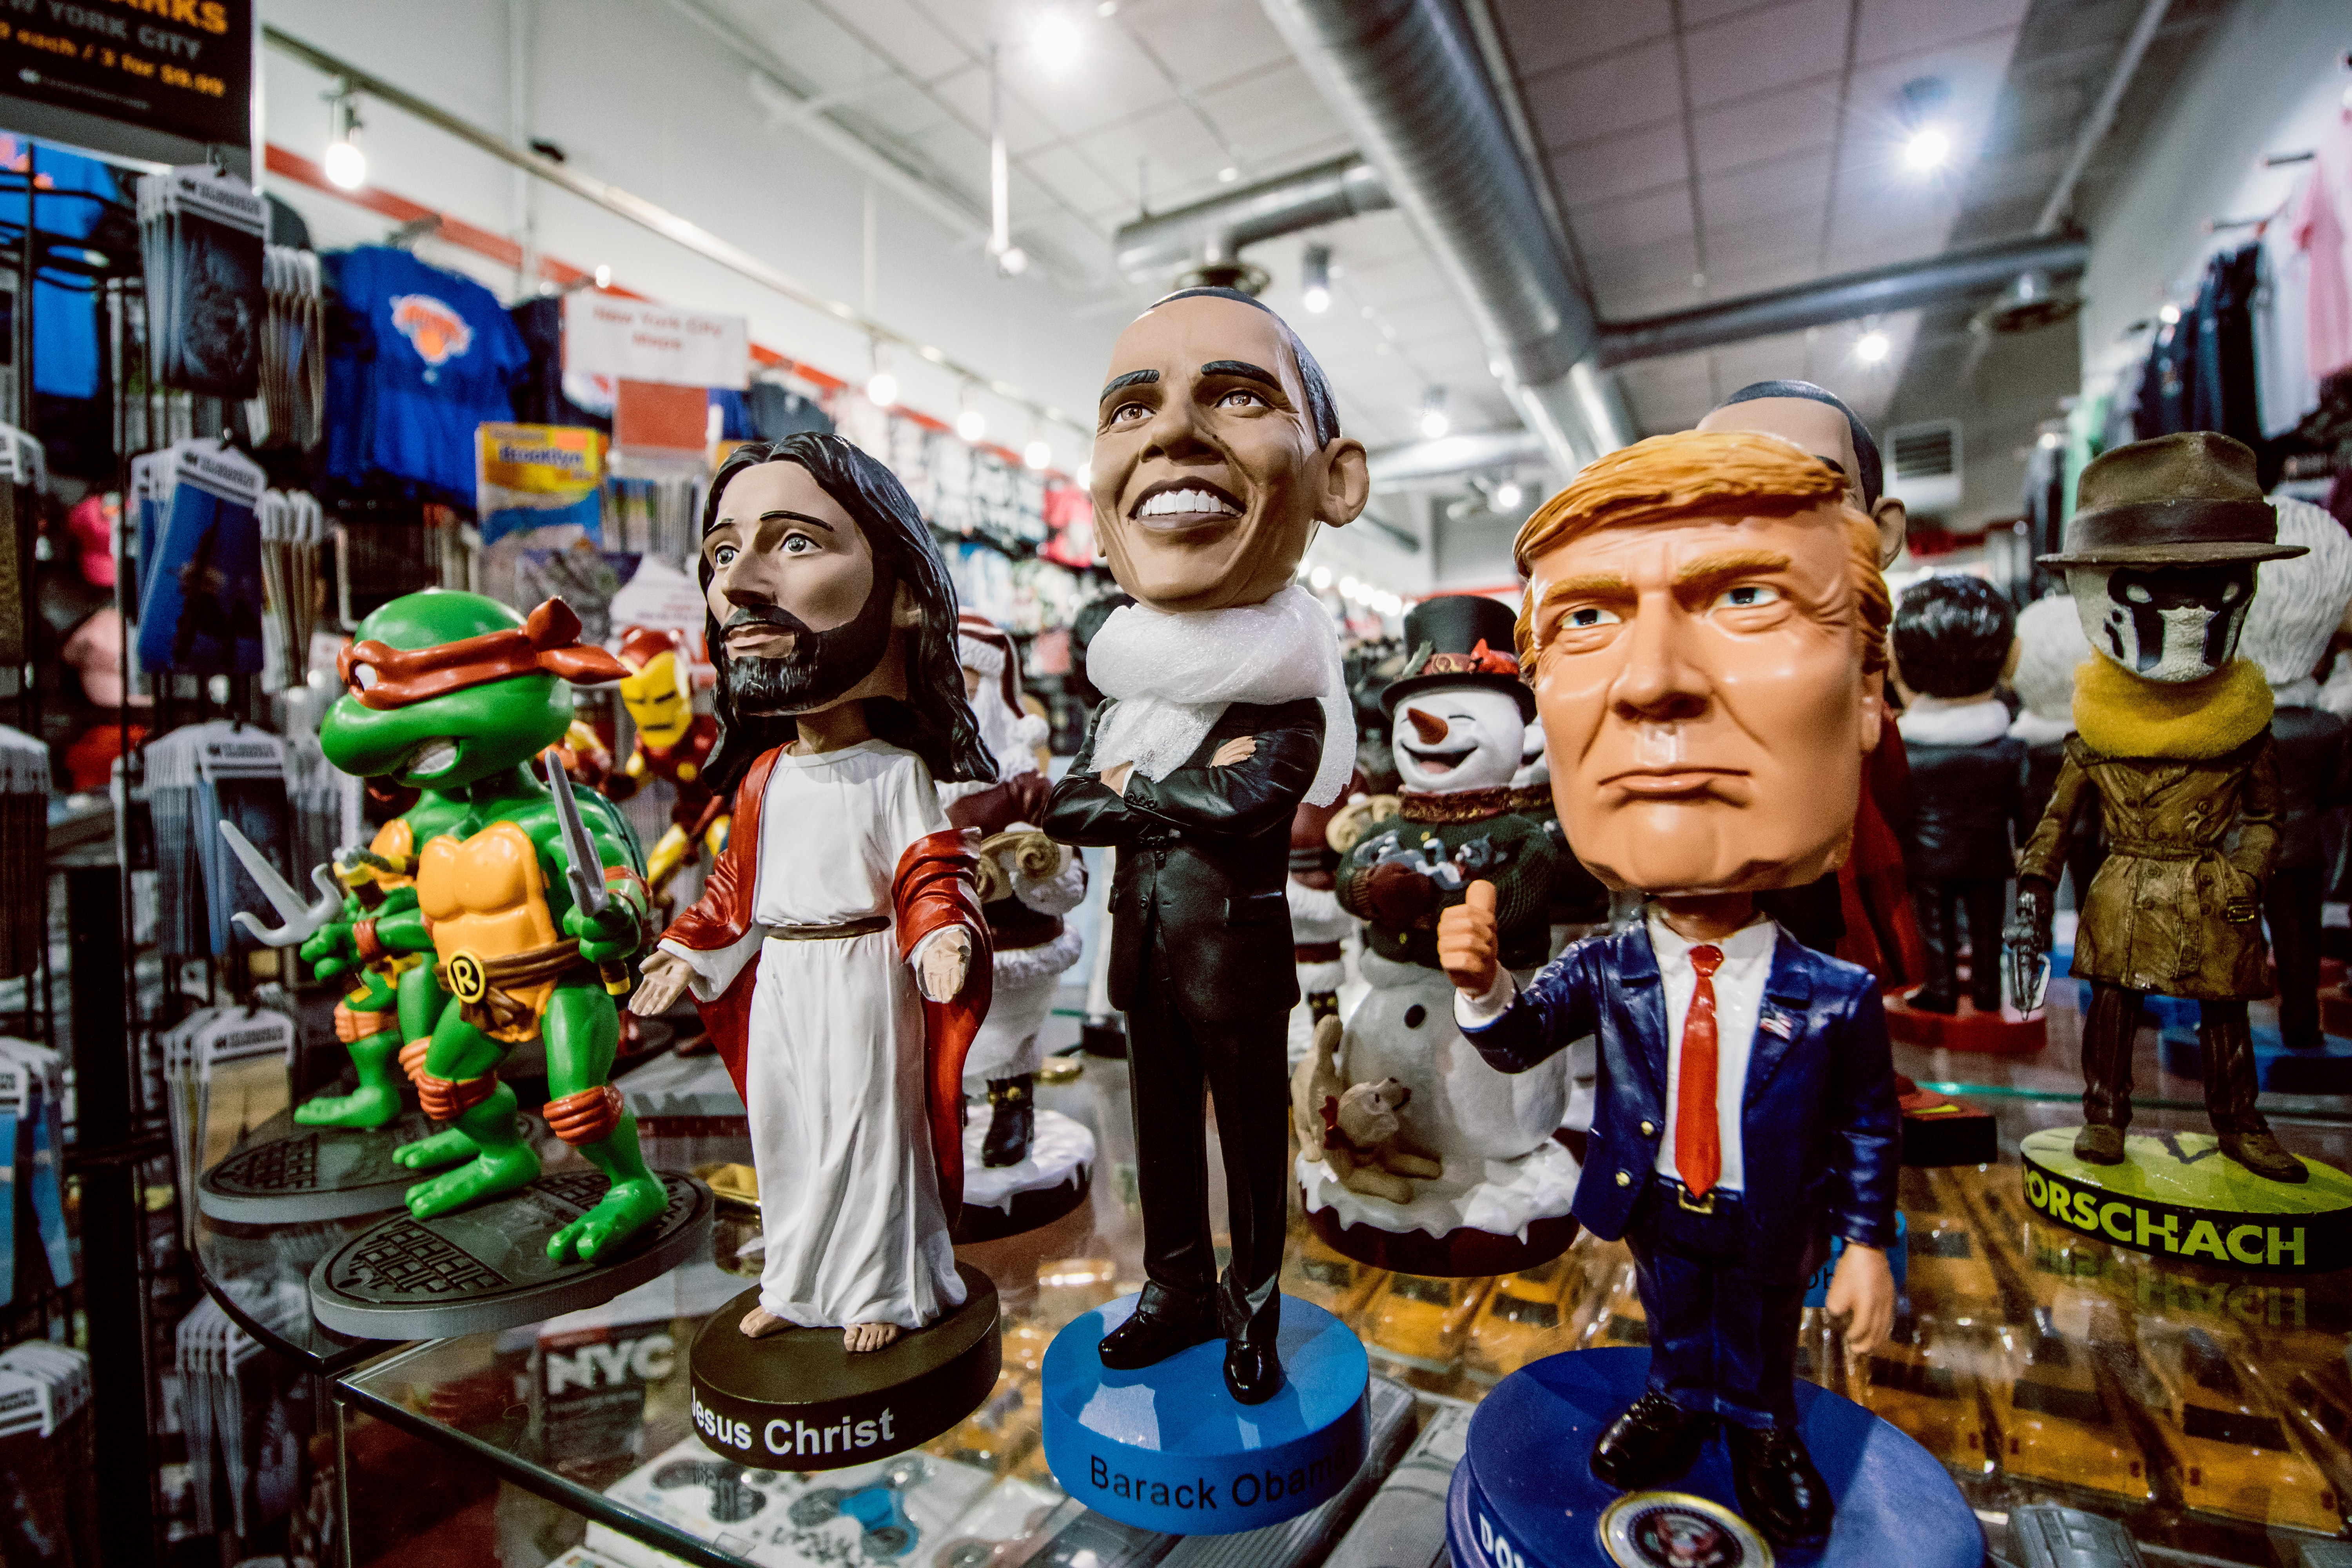 assorted bobblehead figurines inside the store